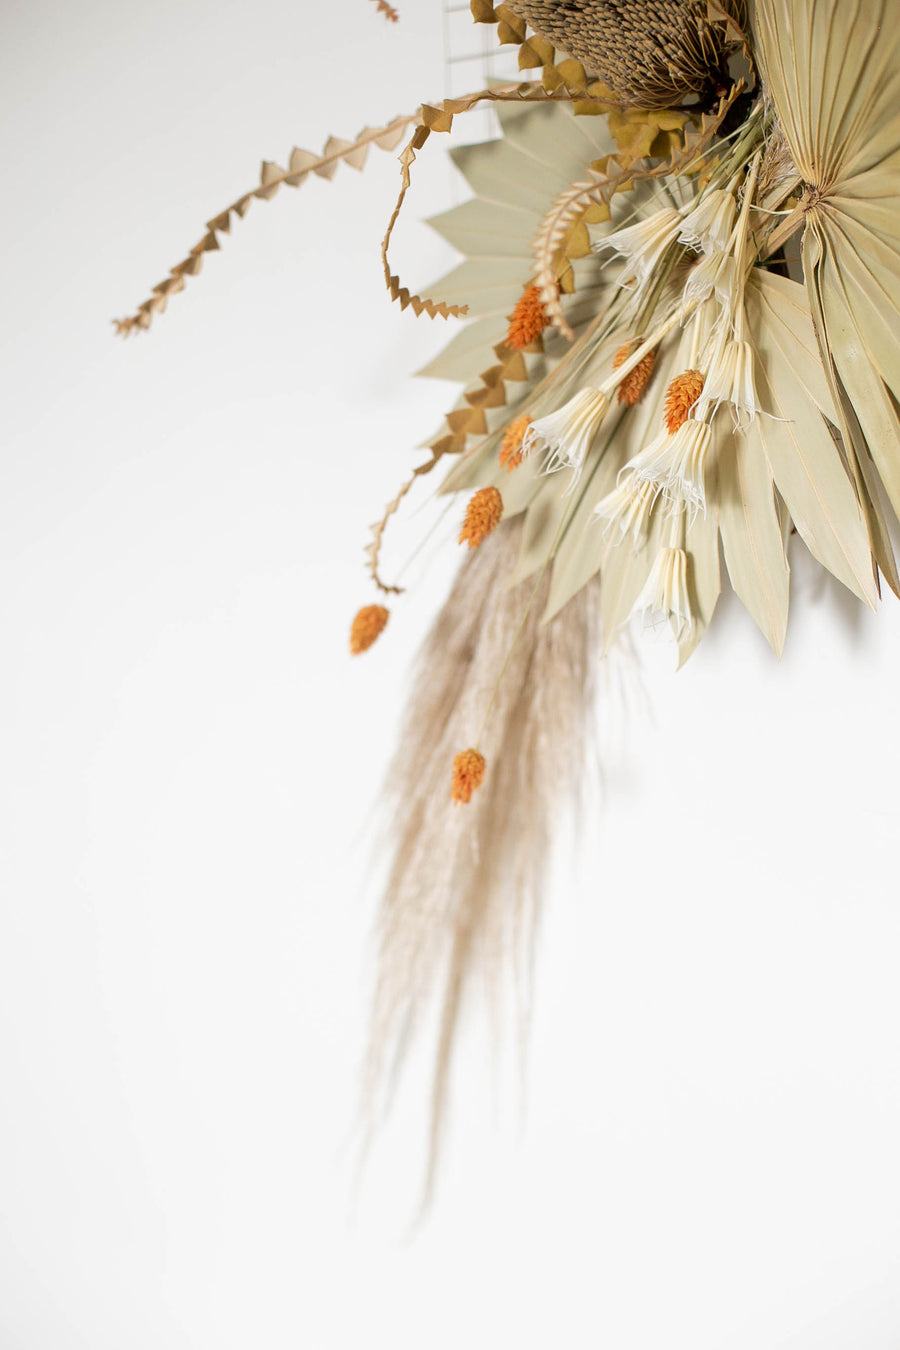 DIY Dried Flower Wall Hanging | Flower Party - Heroine Flowers